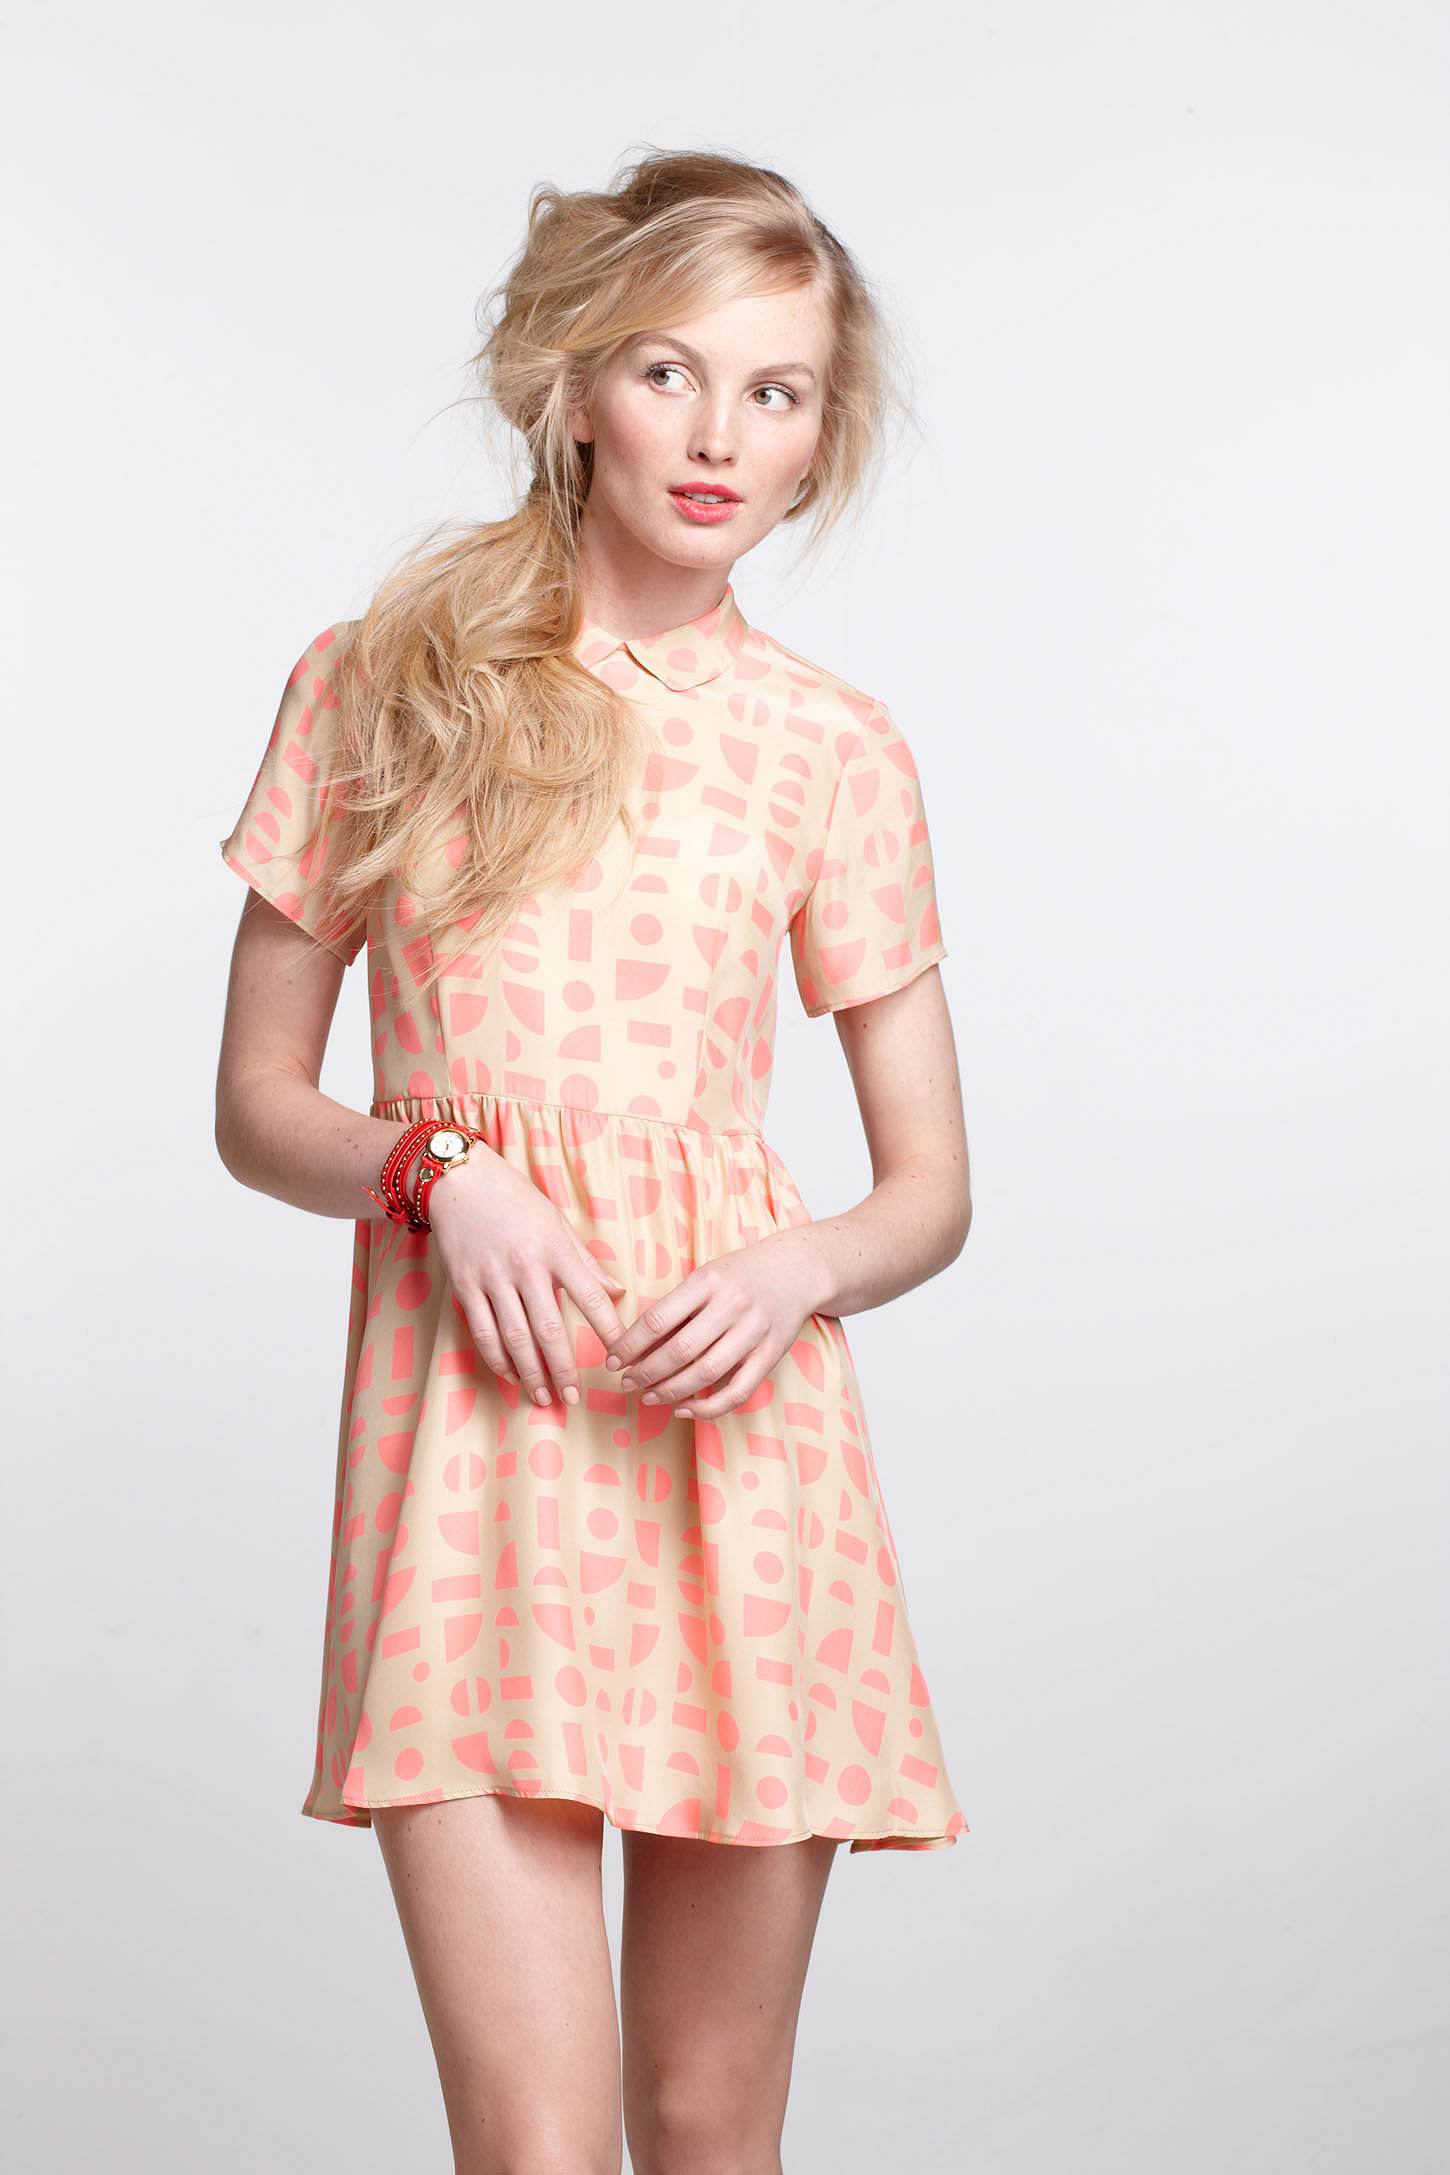 Shapes Collared Mini Dress by Ellen Van Dusen